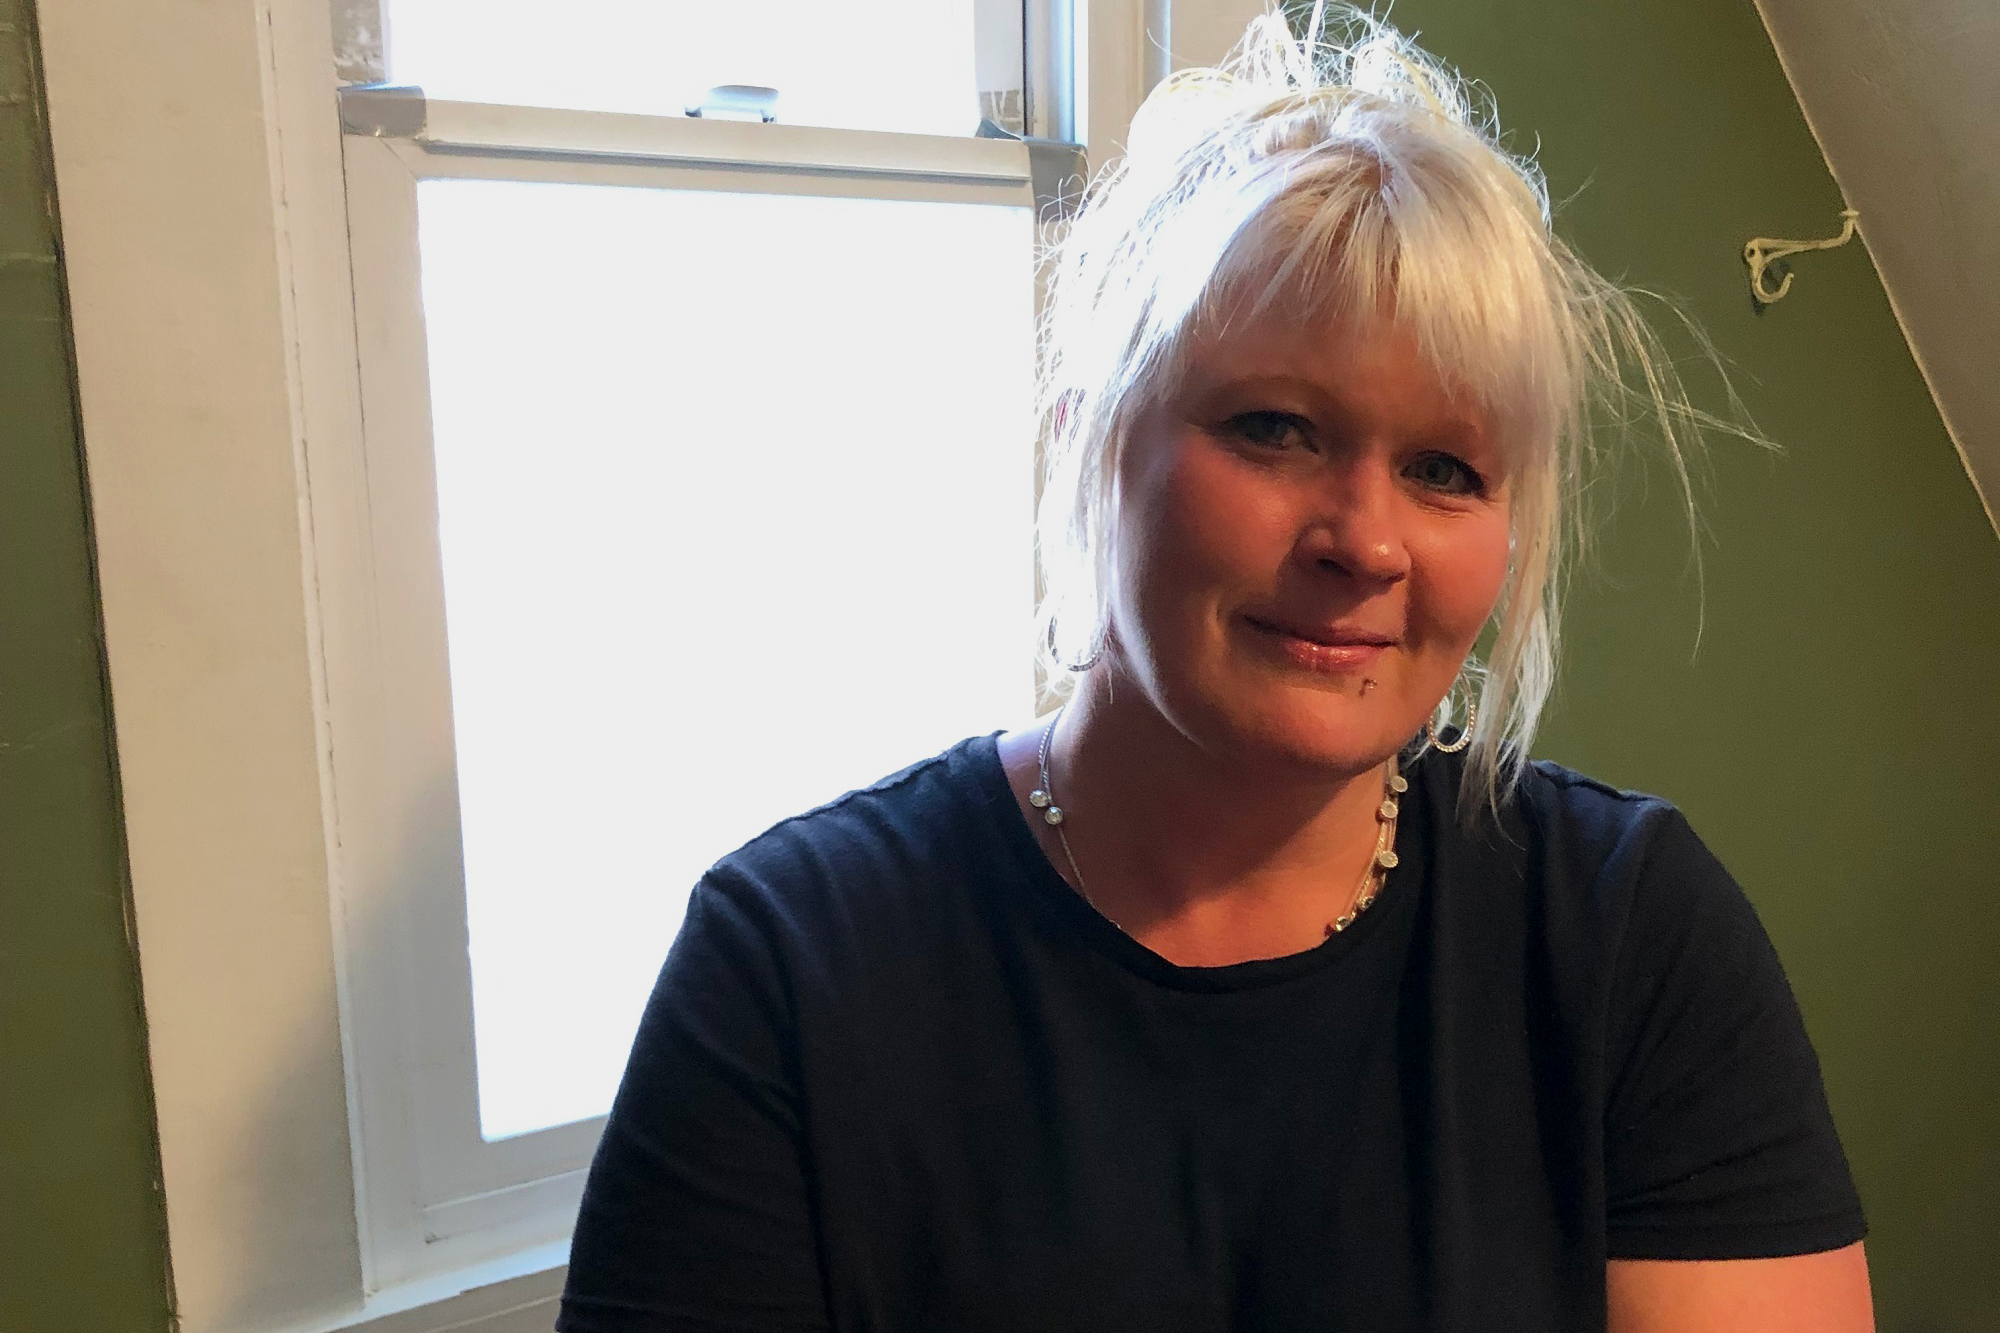 Melinda McDowell sought medication-assisted treatment for her addiction to meth. She has been sober for over a year now.